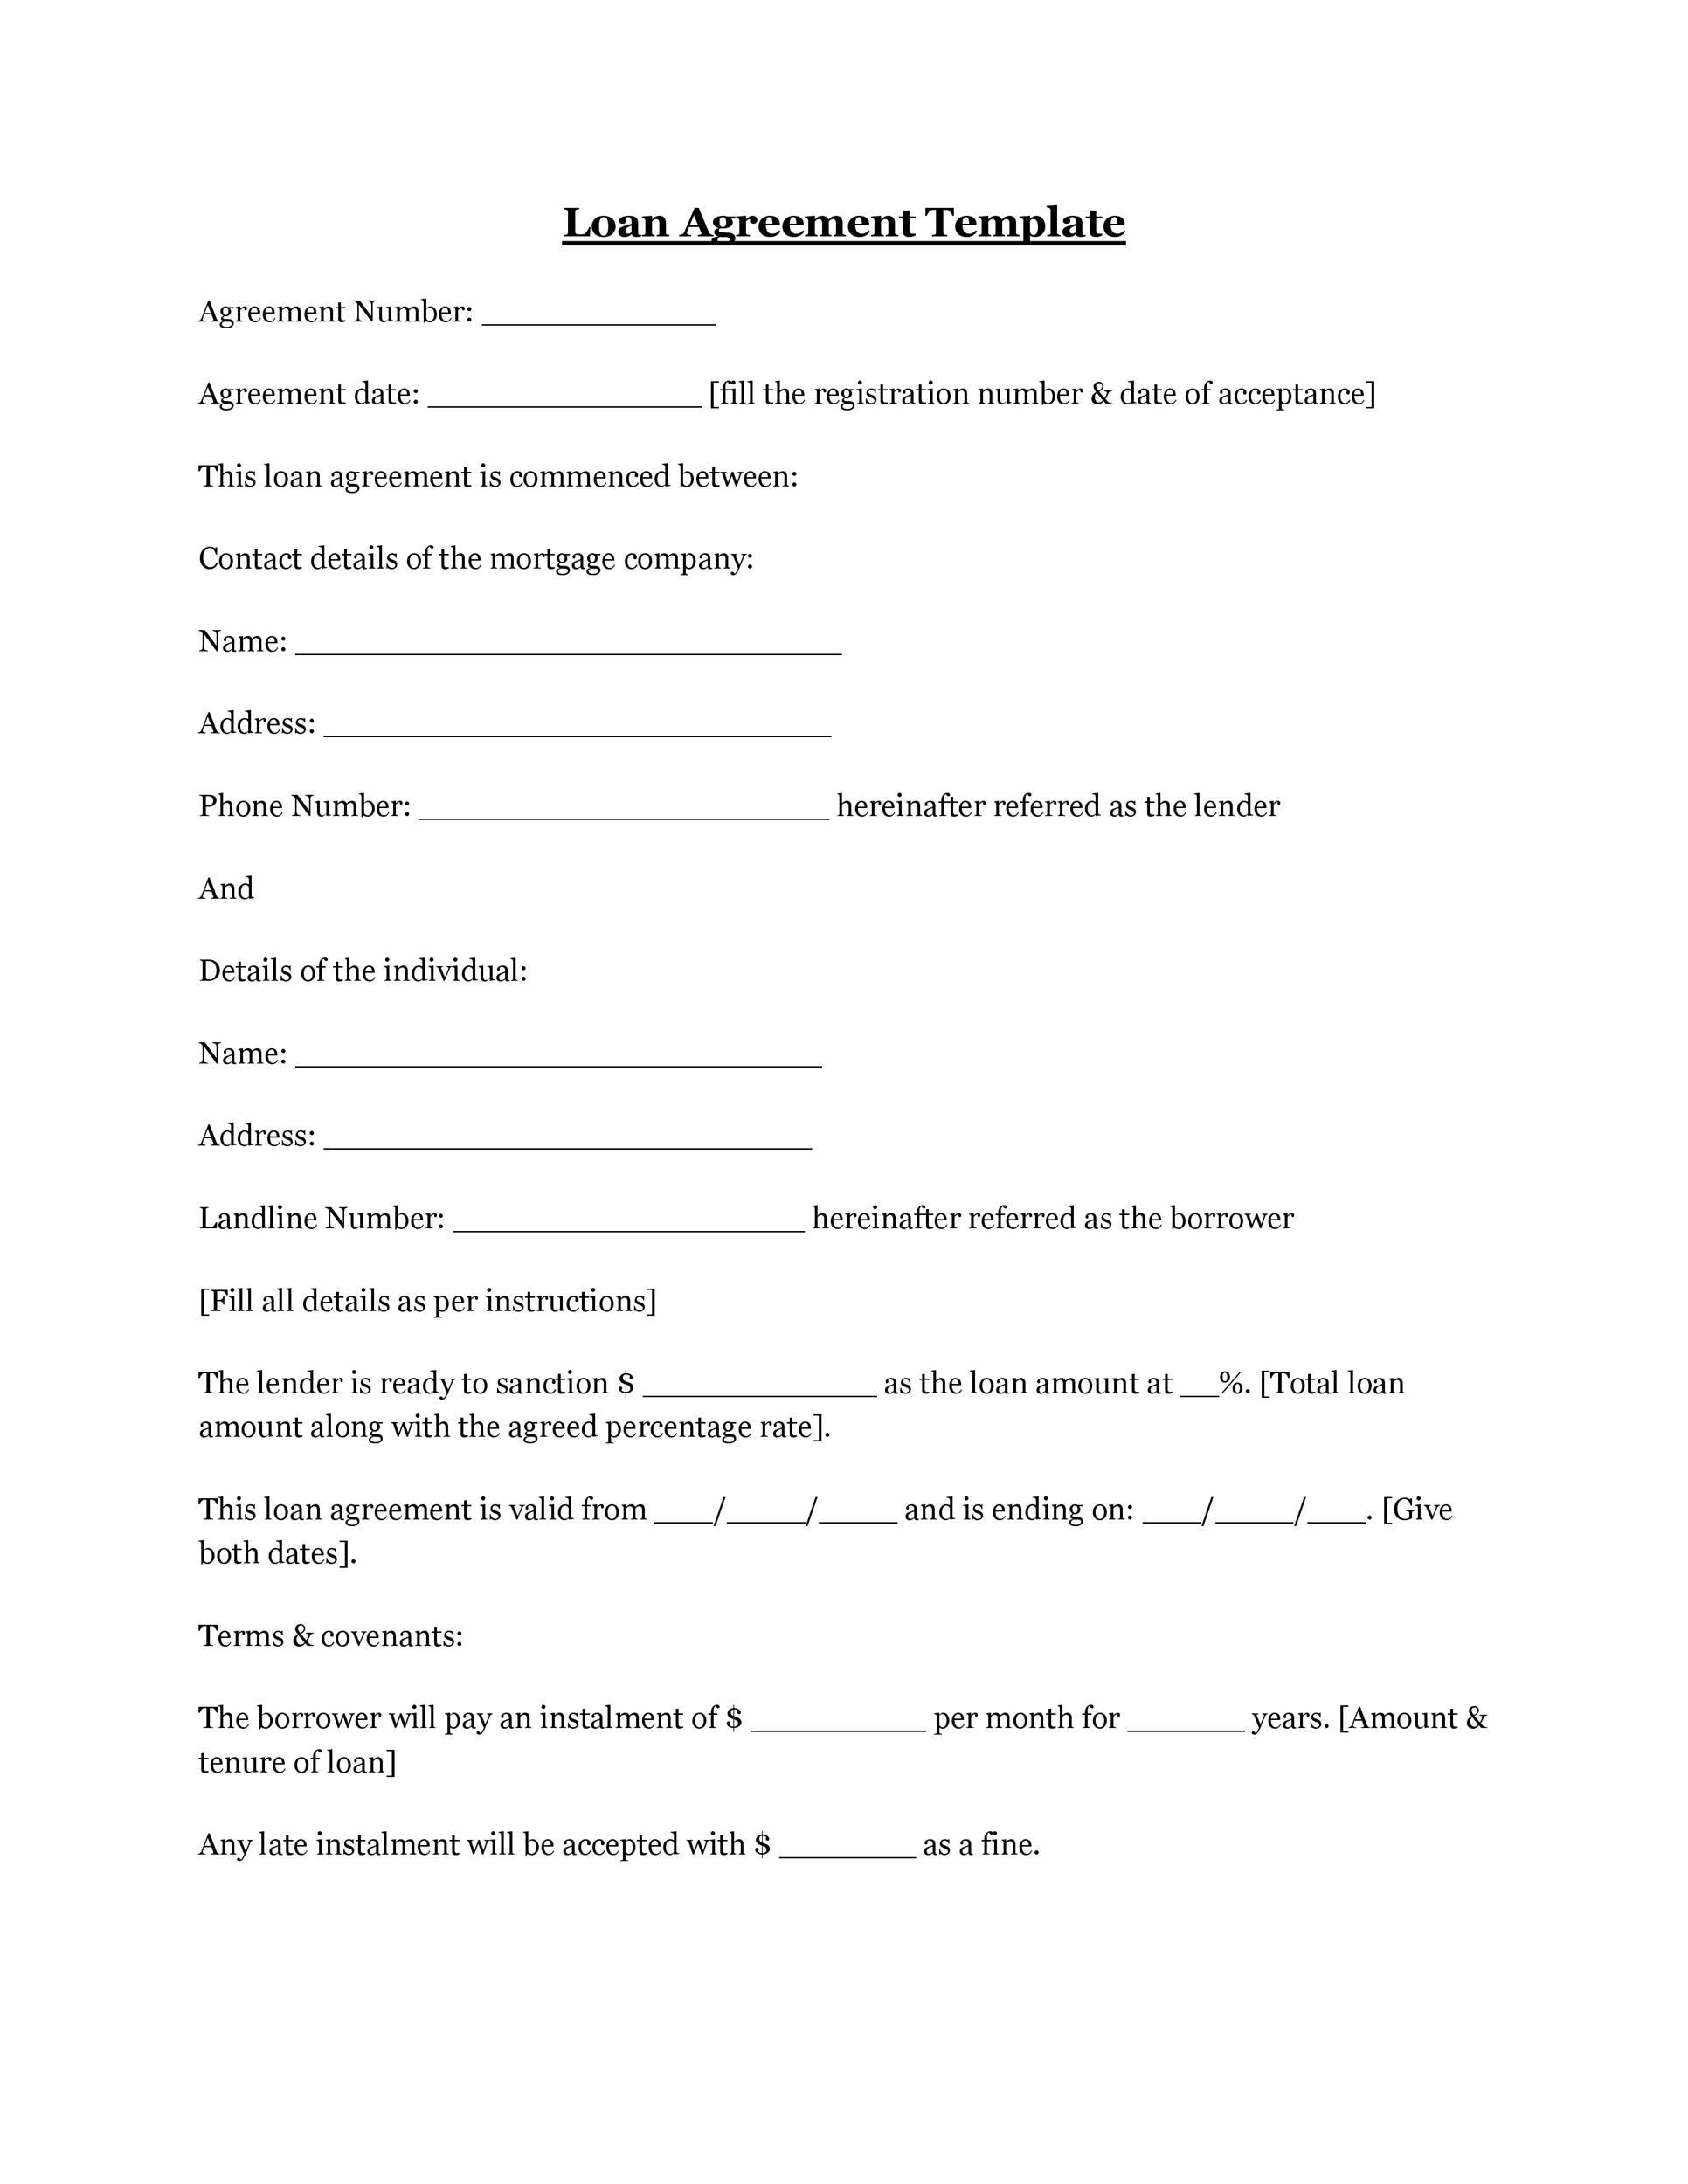 Printable Loan Agreement Template 05  Free Loan Agreement